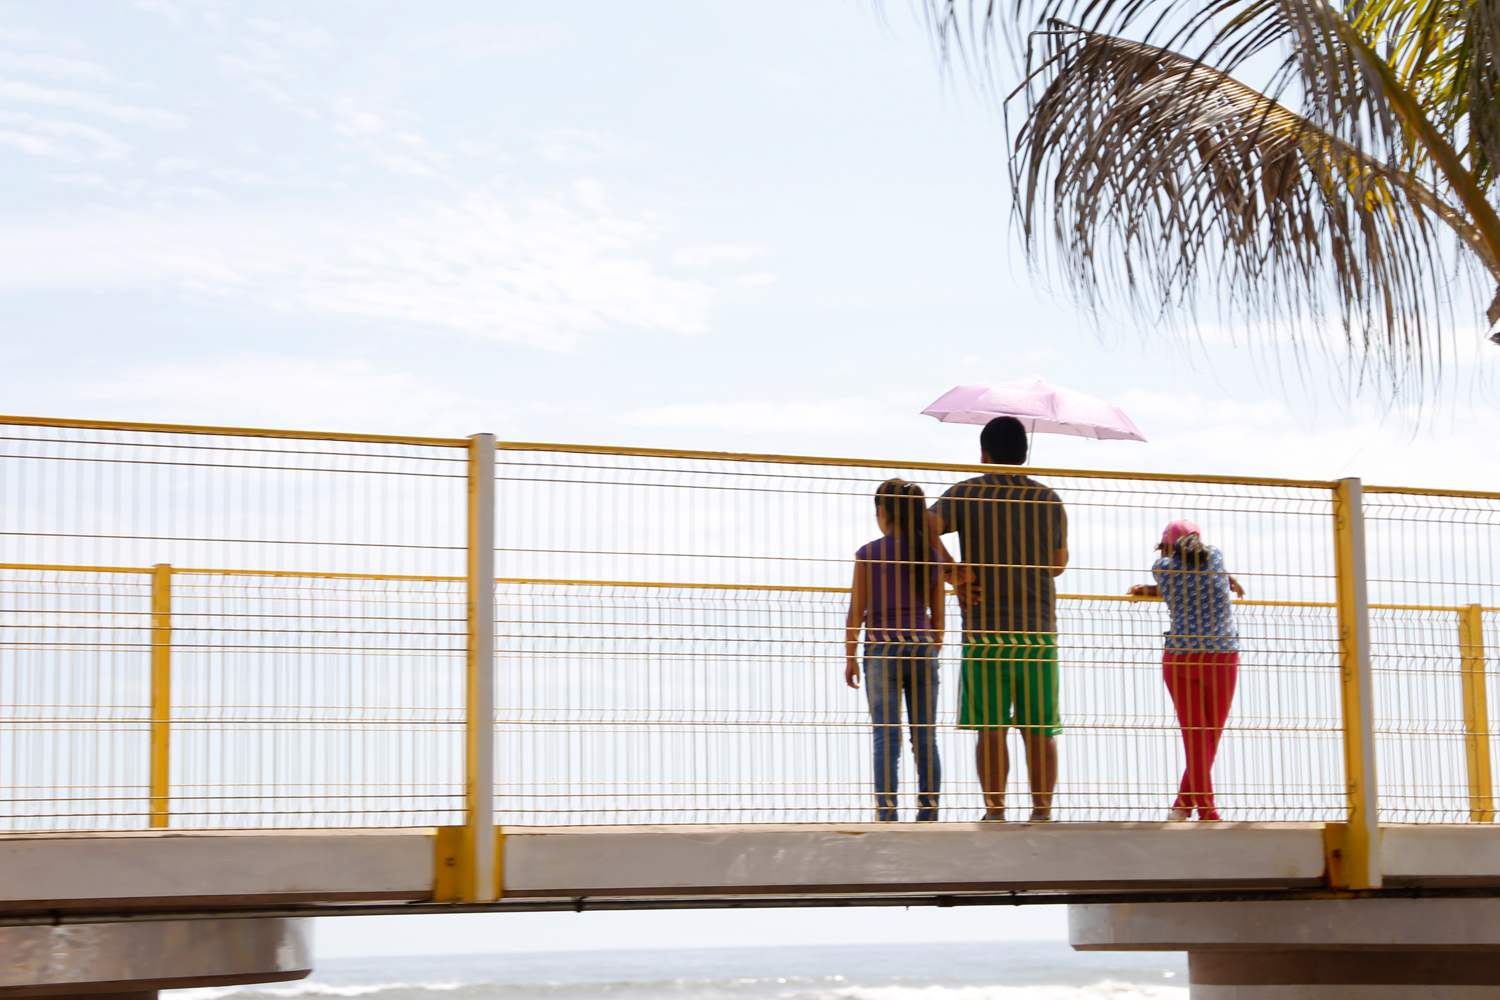 A man and two girls make a stop on a pedestrian bridge overlooking the beach. Shielded from the sun by a pink parasol, they look at the calm ocean underneath a clear blue sky.